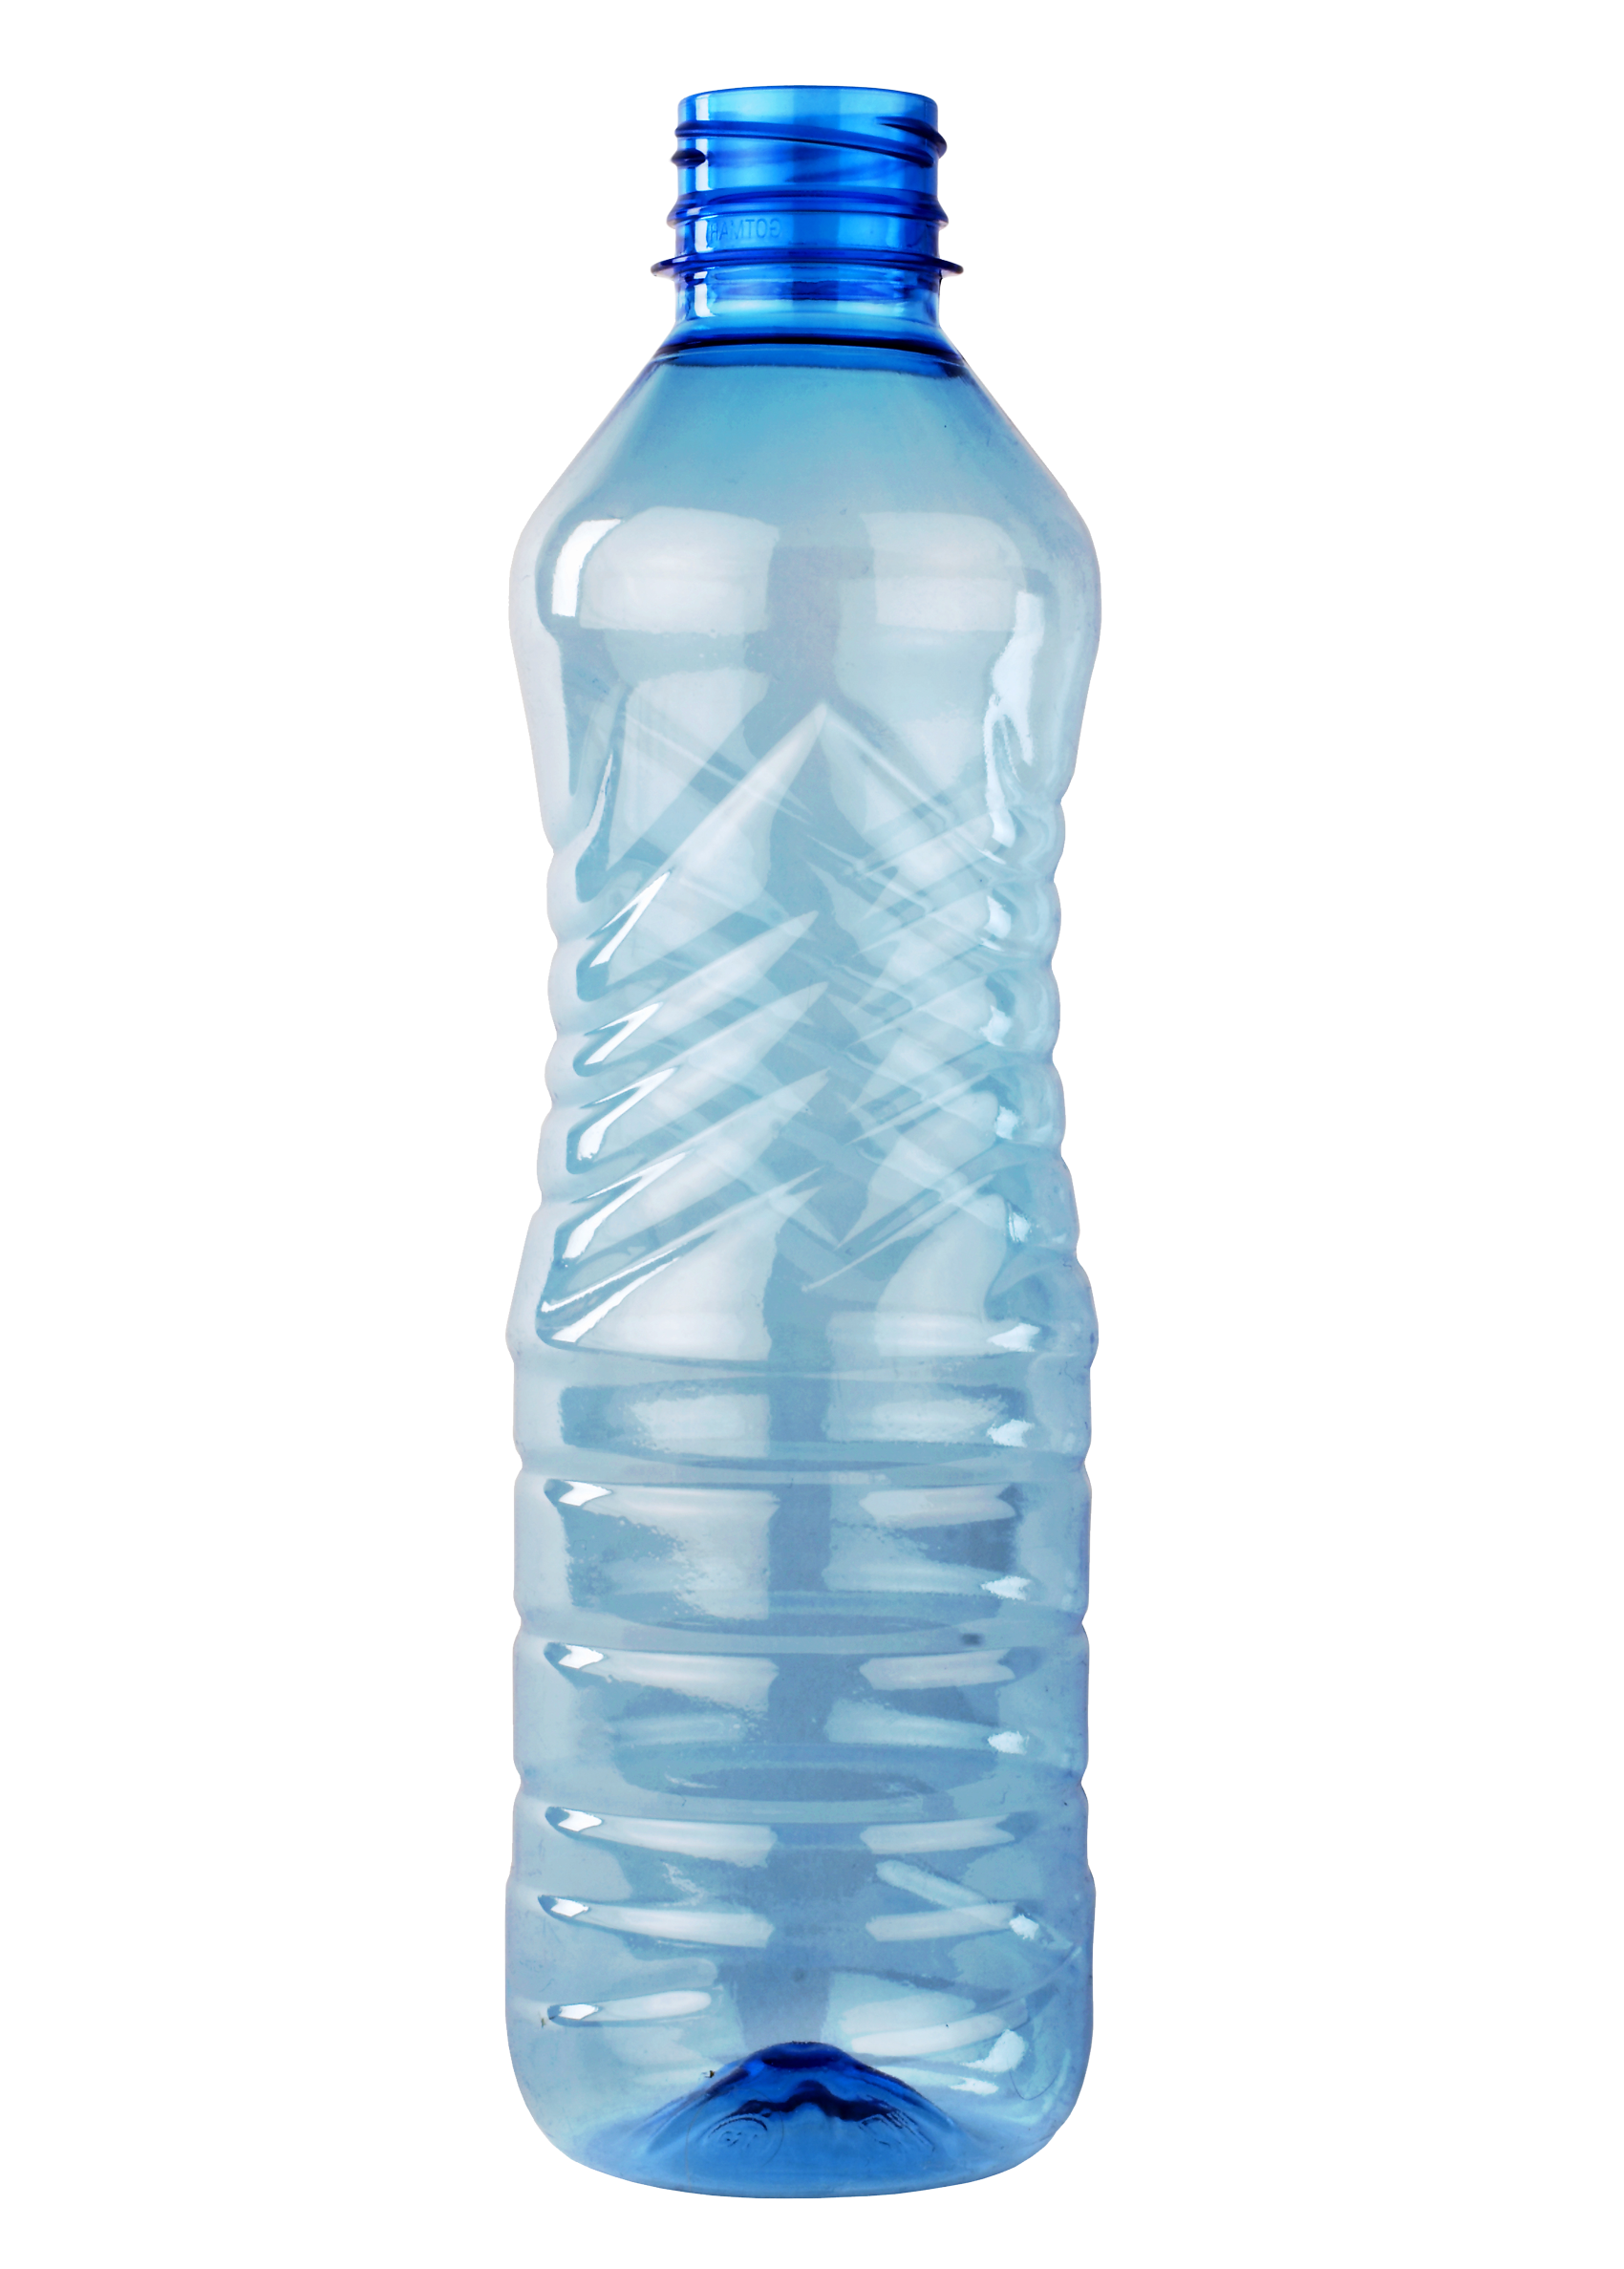 Water Bottle Png image #39990